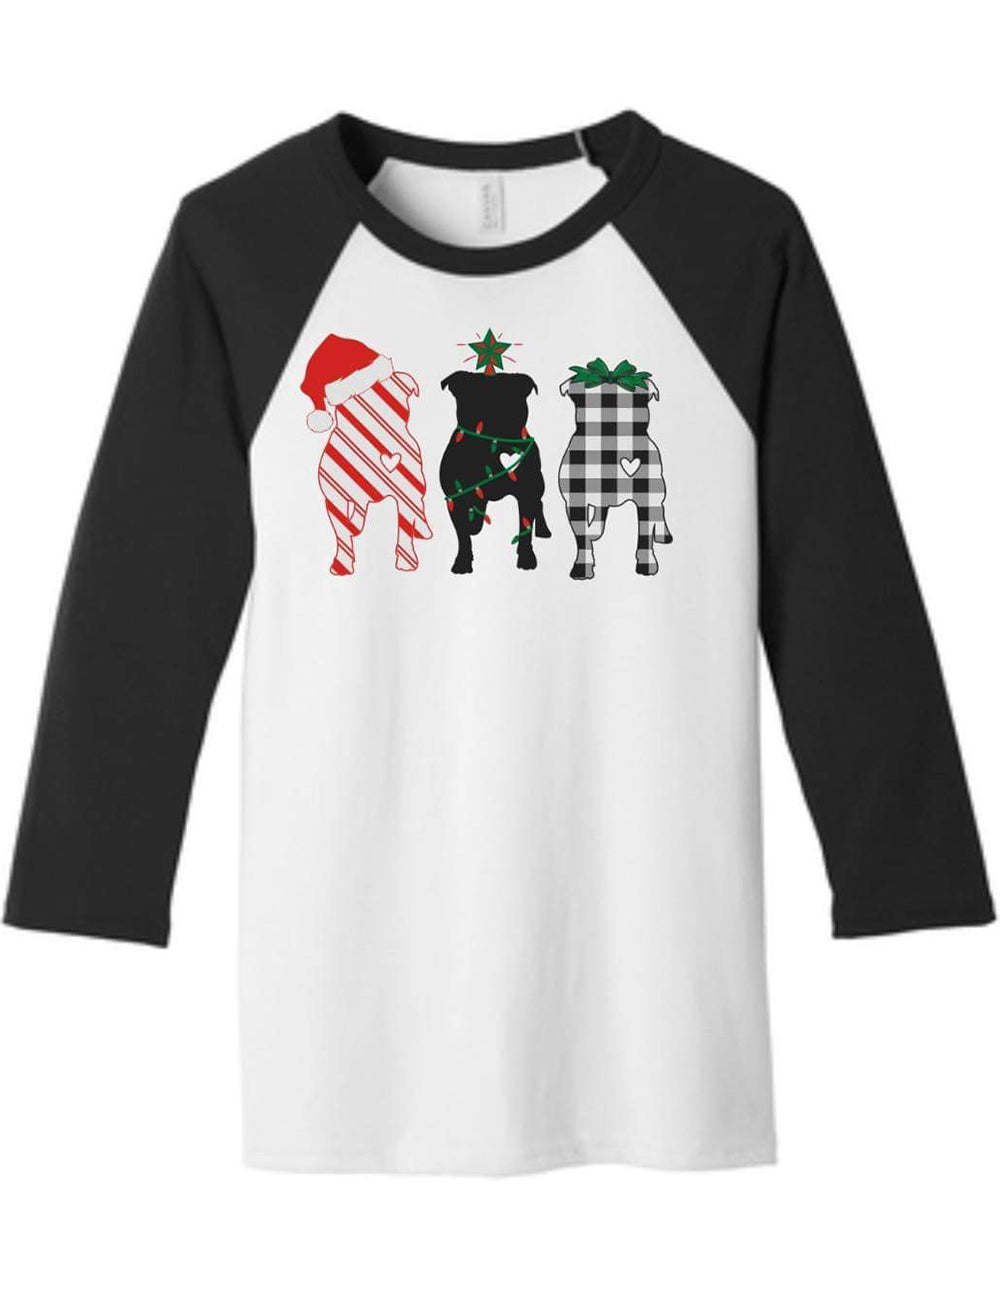 Merry Pitmas 3/4 Sleeve T-Shirt